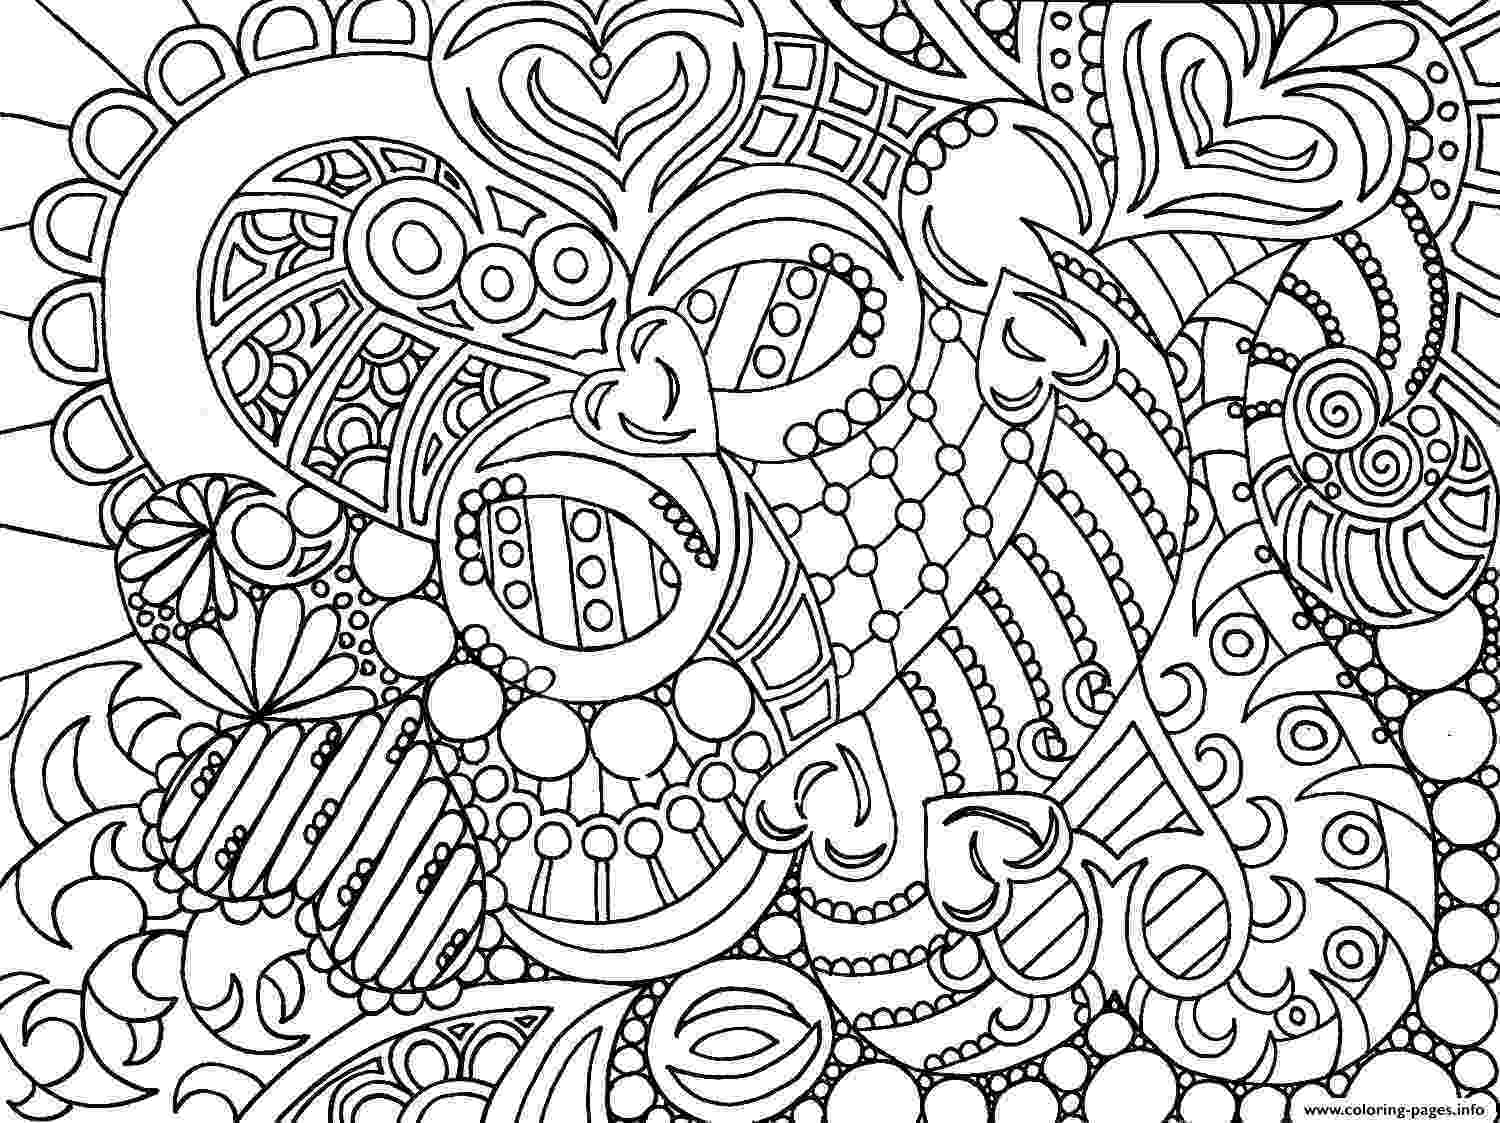 cool pictures to color and print very cool colouring for adult coloring pages printable color print and cool pictures to